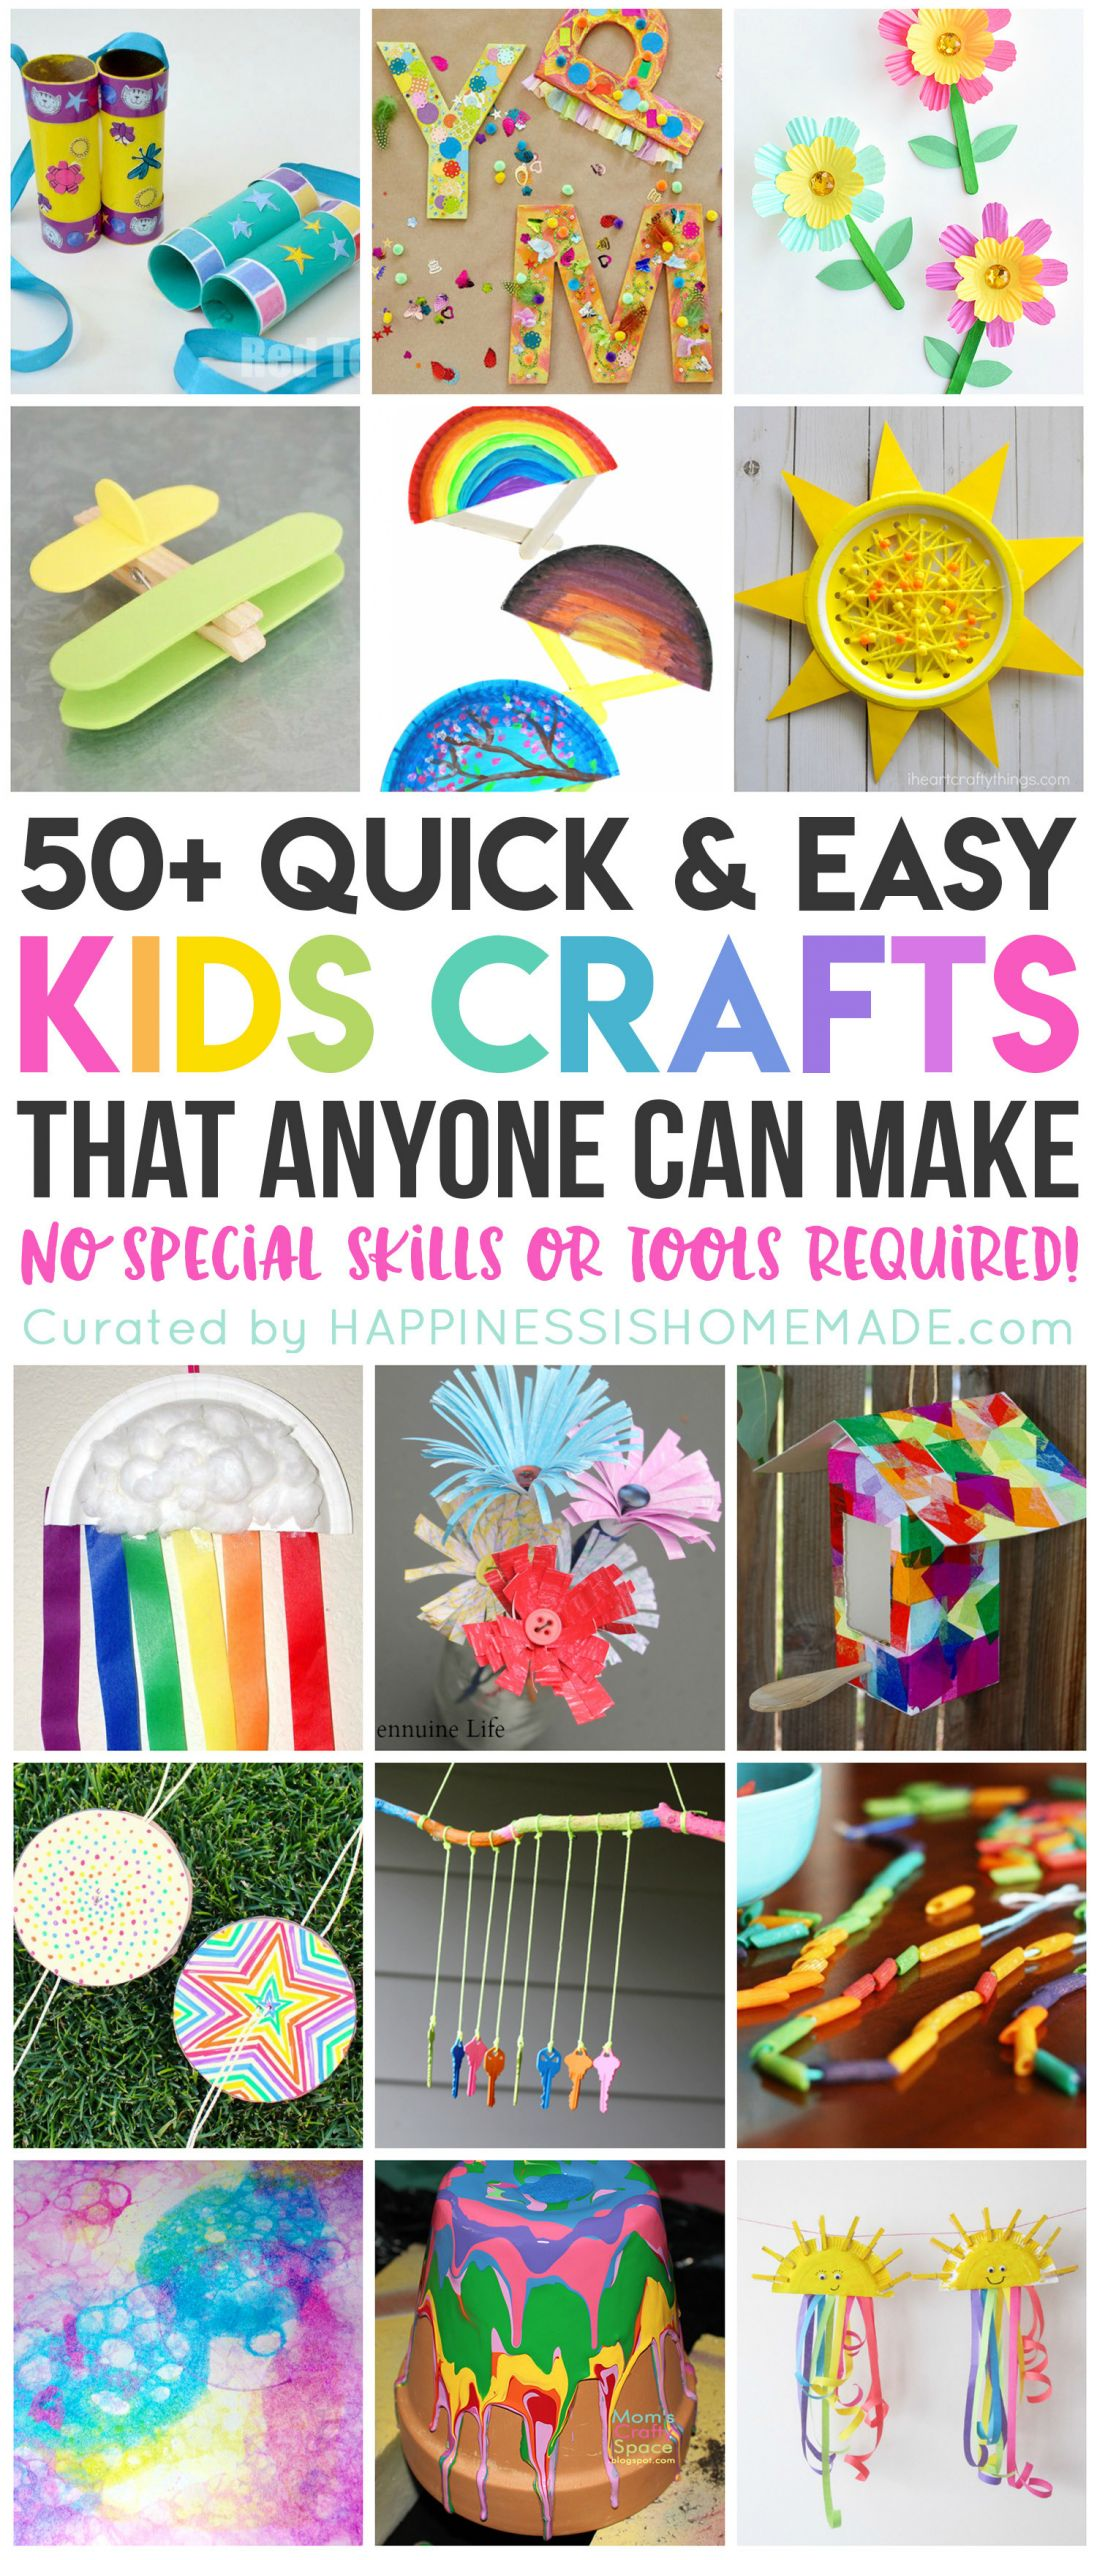 Easy Arts And Crafts For Toddlers  50 Quick & Easy Kids Crafts that ANYONE Can Make